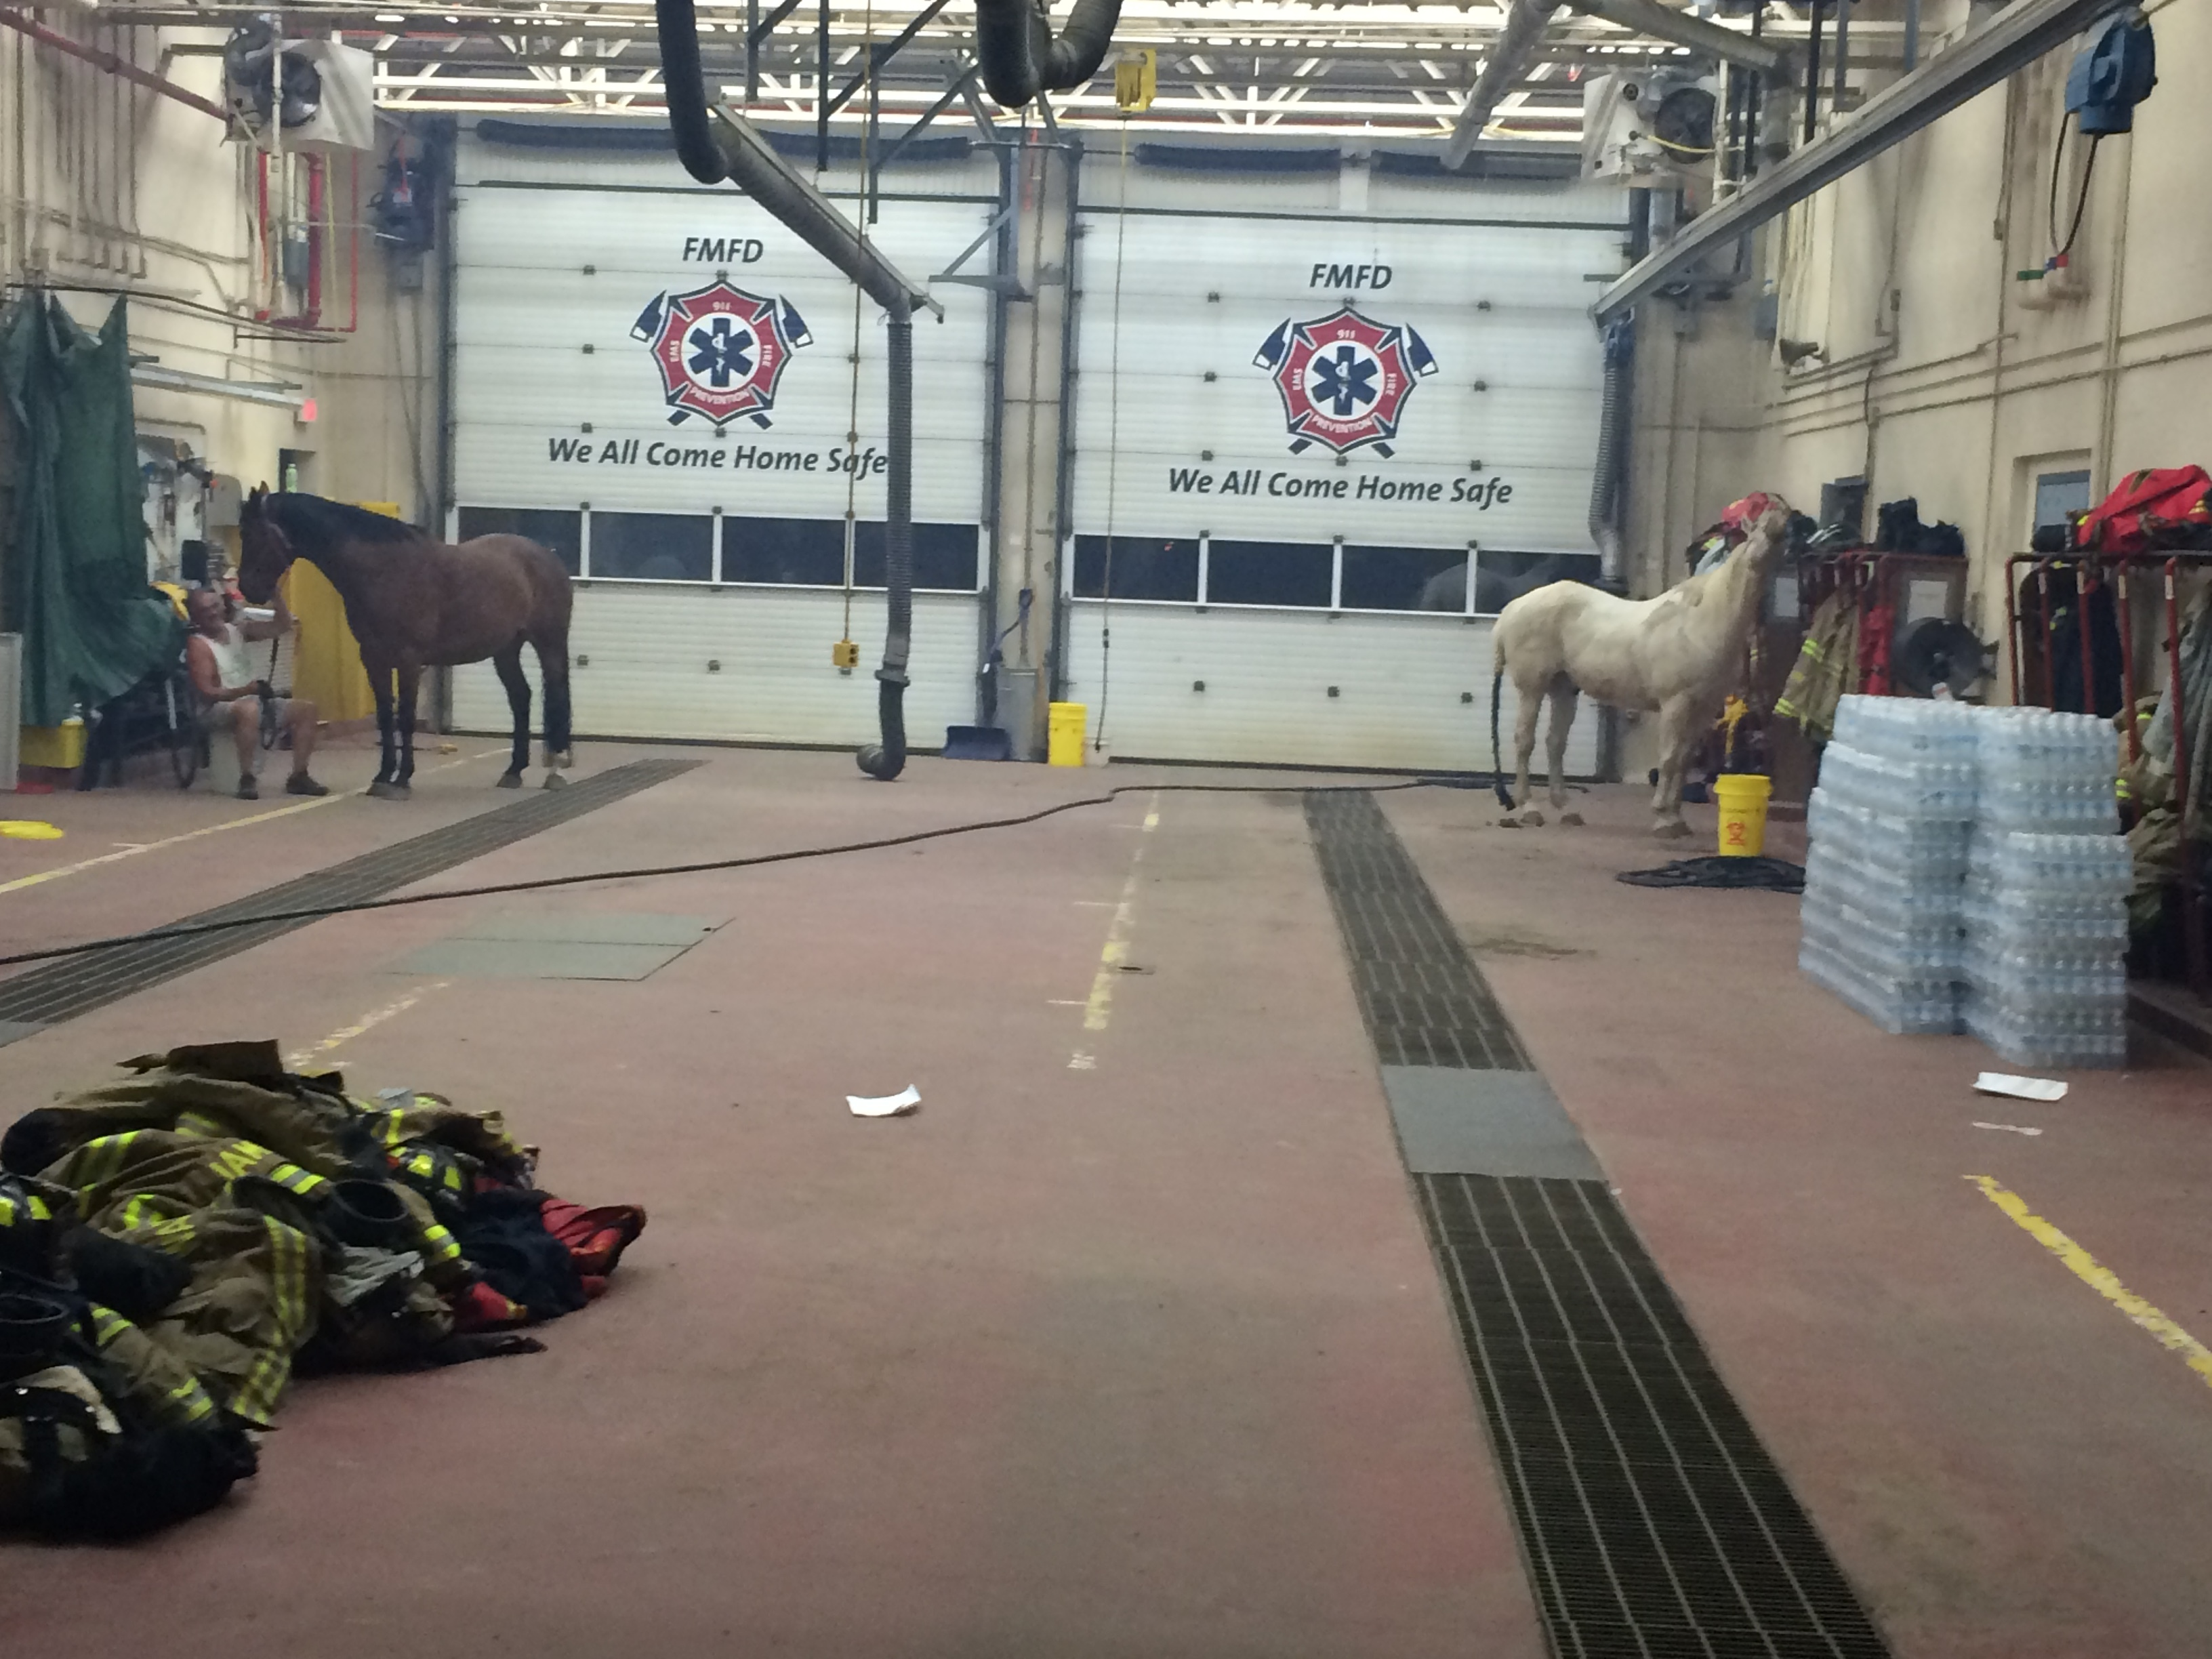 Darby Allen took this photo of horses finding shelter in Fort McMurray's Fire Hall 1, overnight on May 3. (Darby Allen)